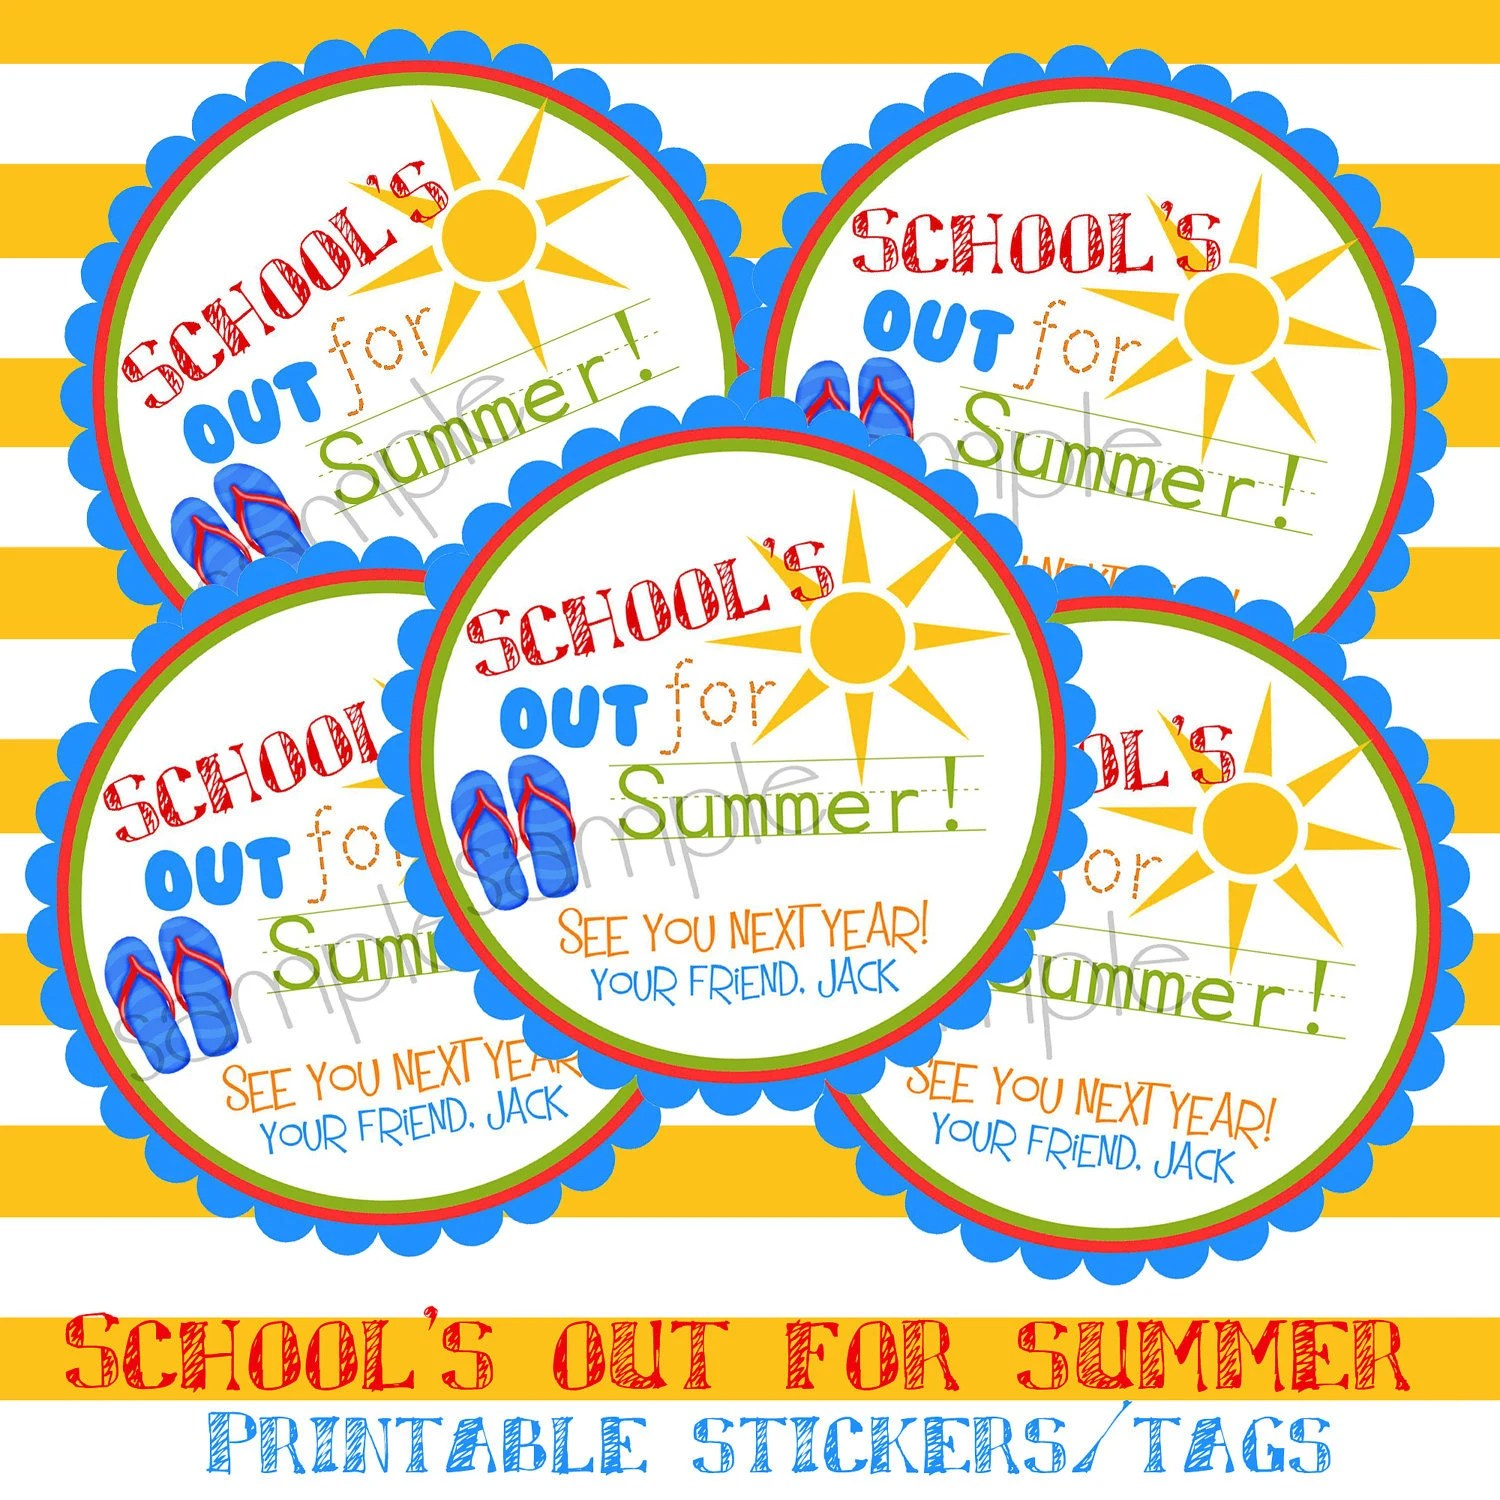 Printable, DIY, Schools Out, Sun, Flip flops, Summer, Labels,  stickers, Hang Tags, Teacher, children, kids, school - LittlebeaneBoutique